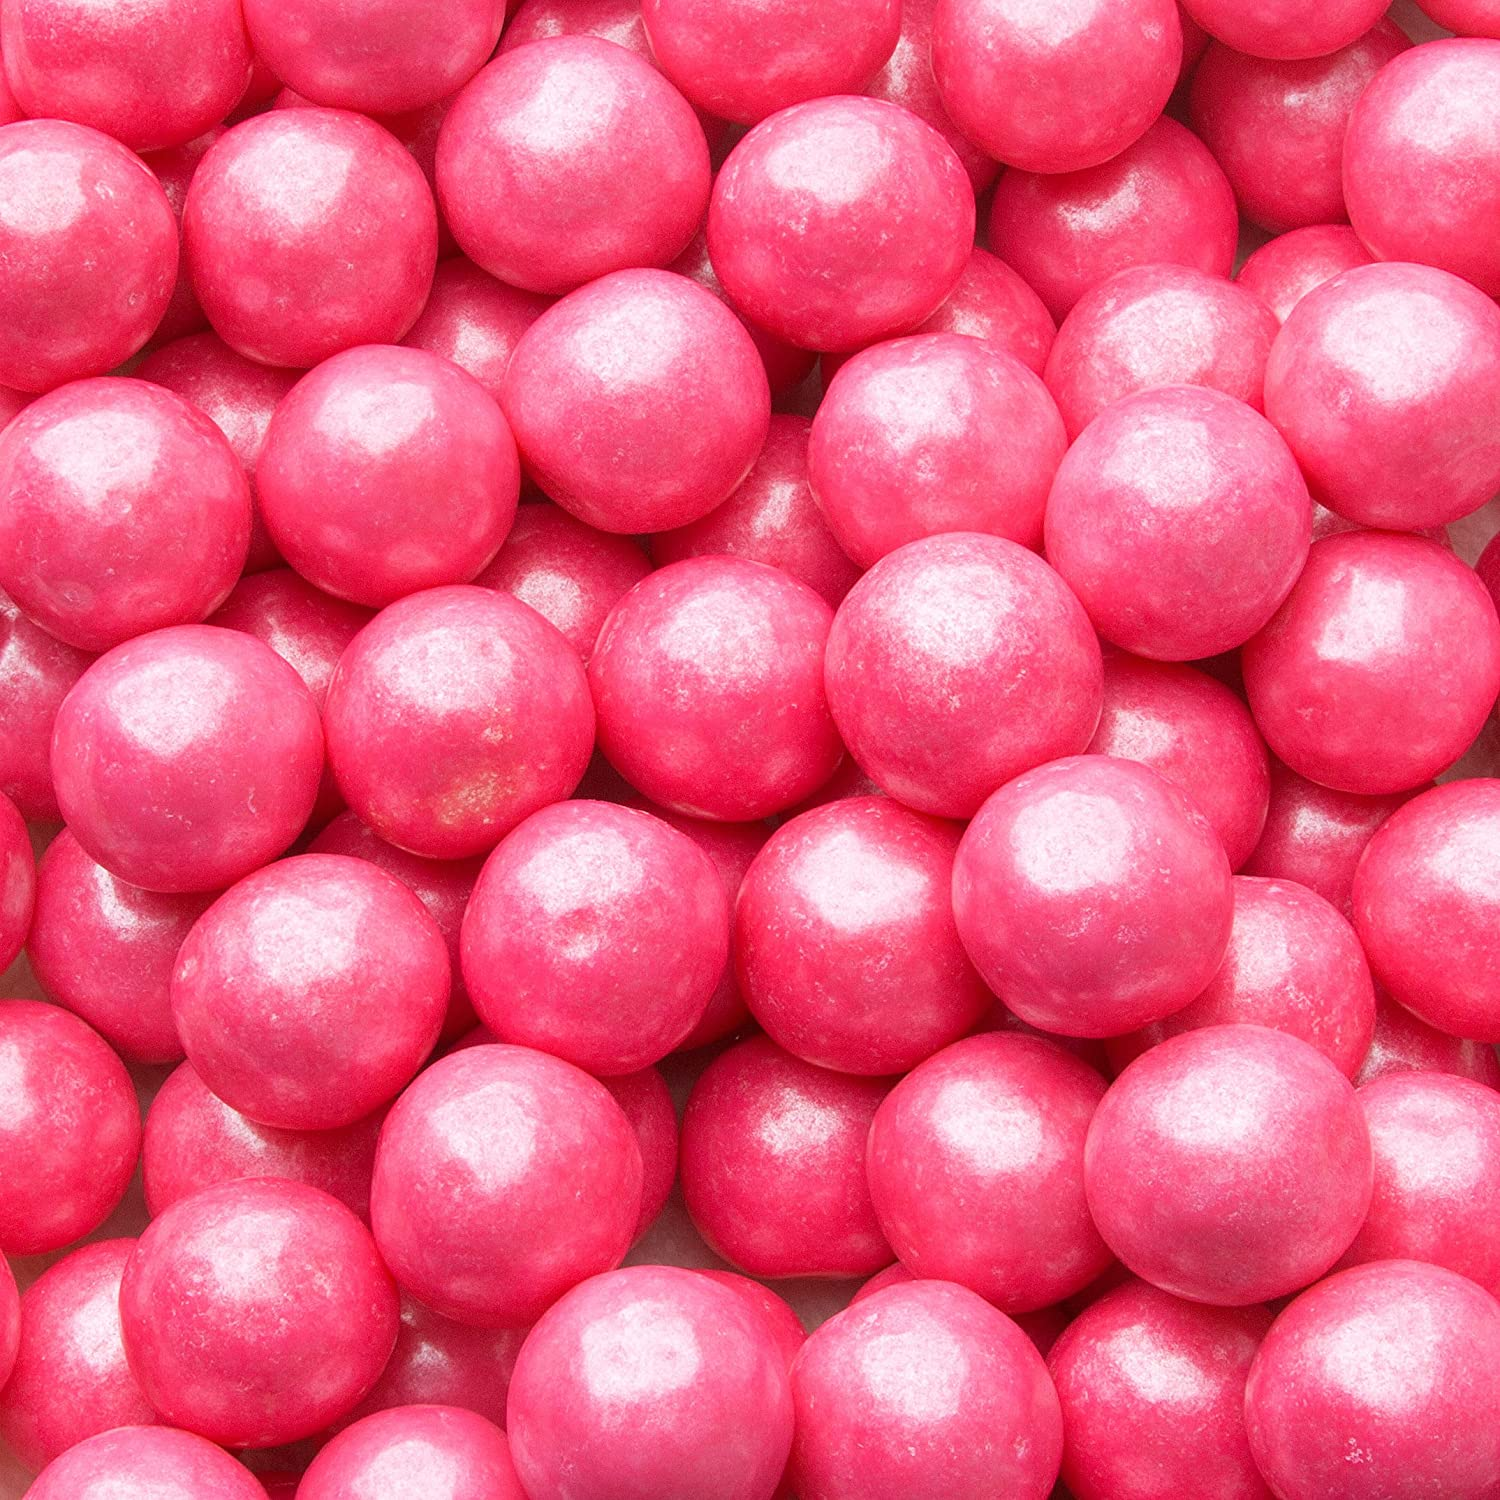 Amazon.com : Gumballs for Candy Buffet and Party Favors - 2 LB ...